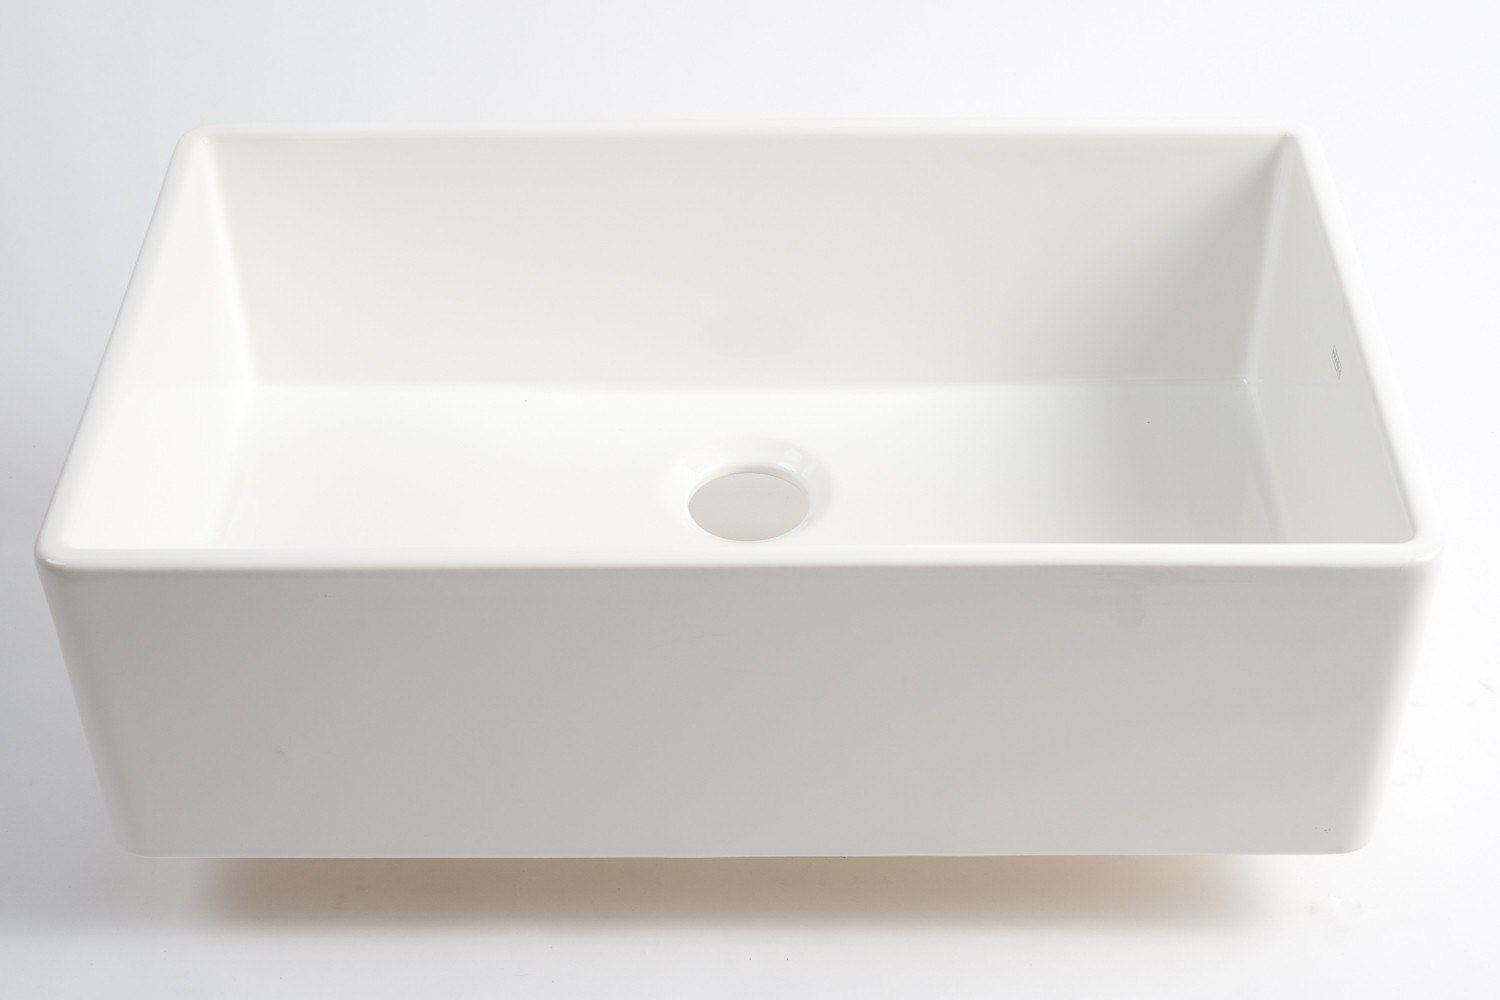 Fire Clay Sinks : ... Fireclay SinkFHK71033 FHK710-33Franke Sink, Franke Kitchen Sinks